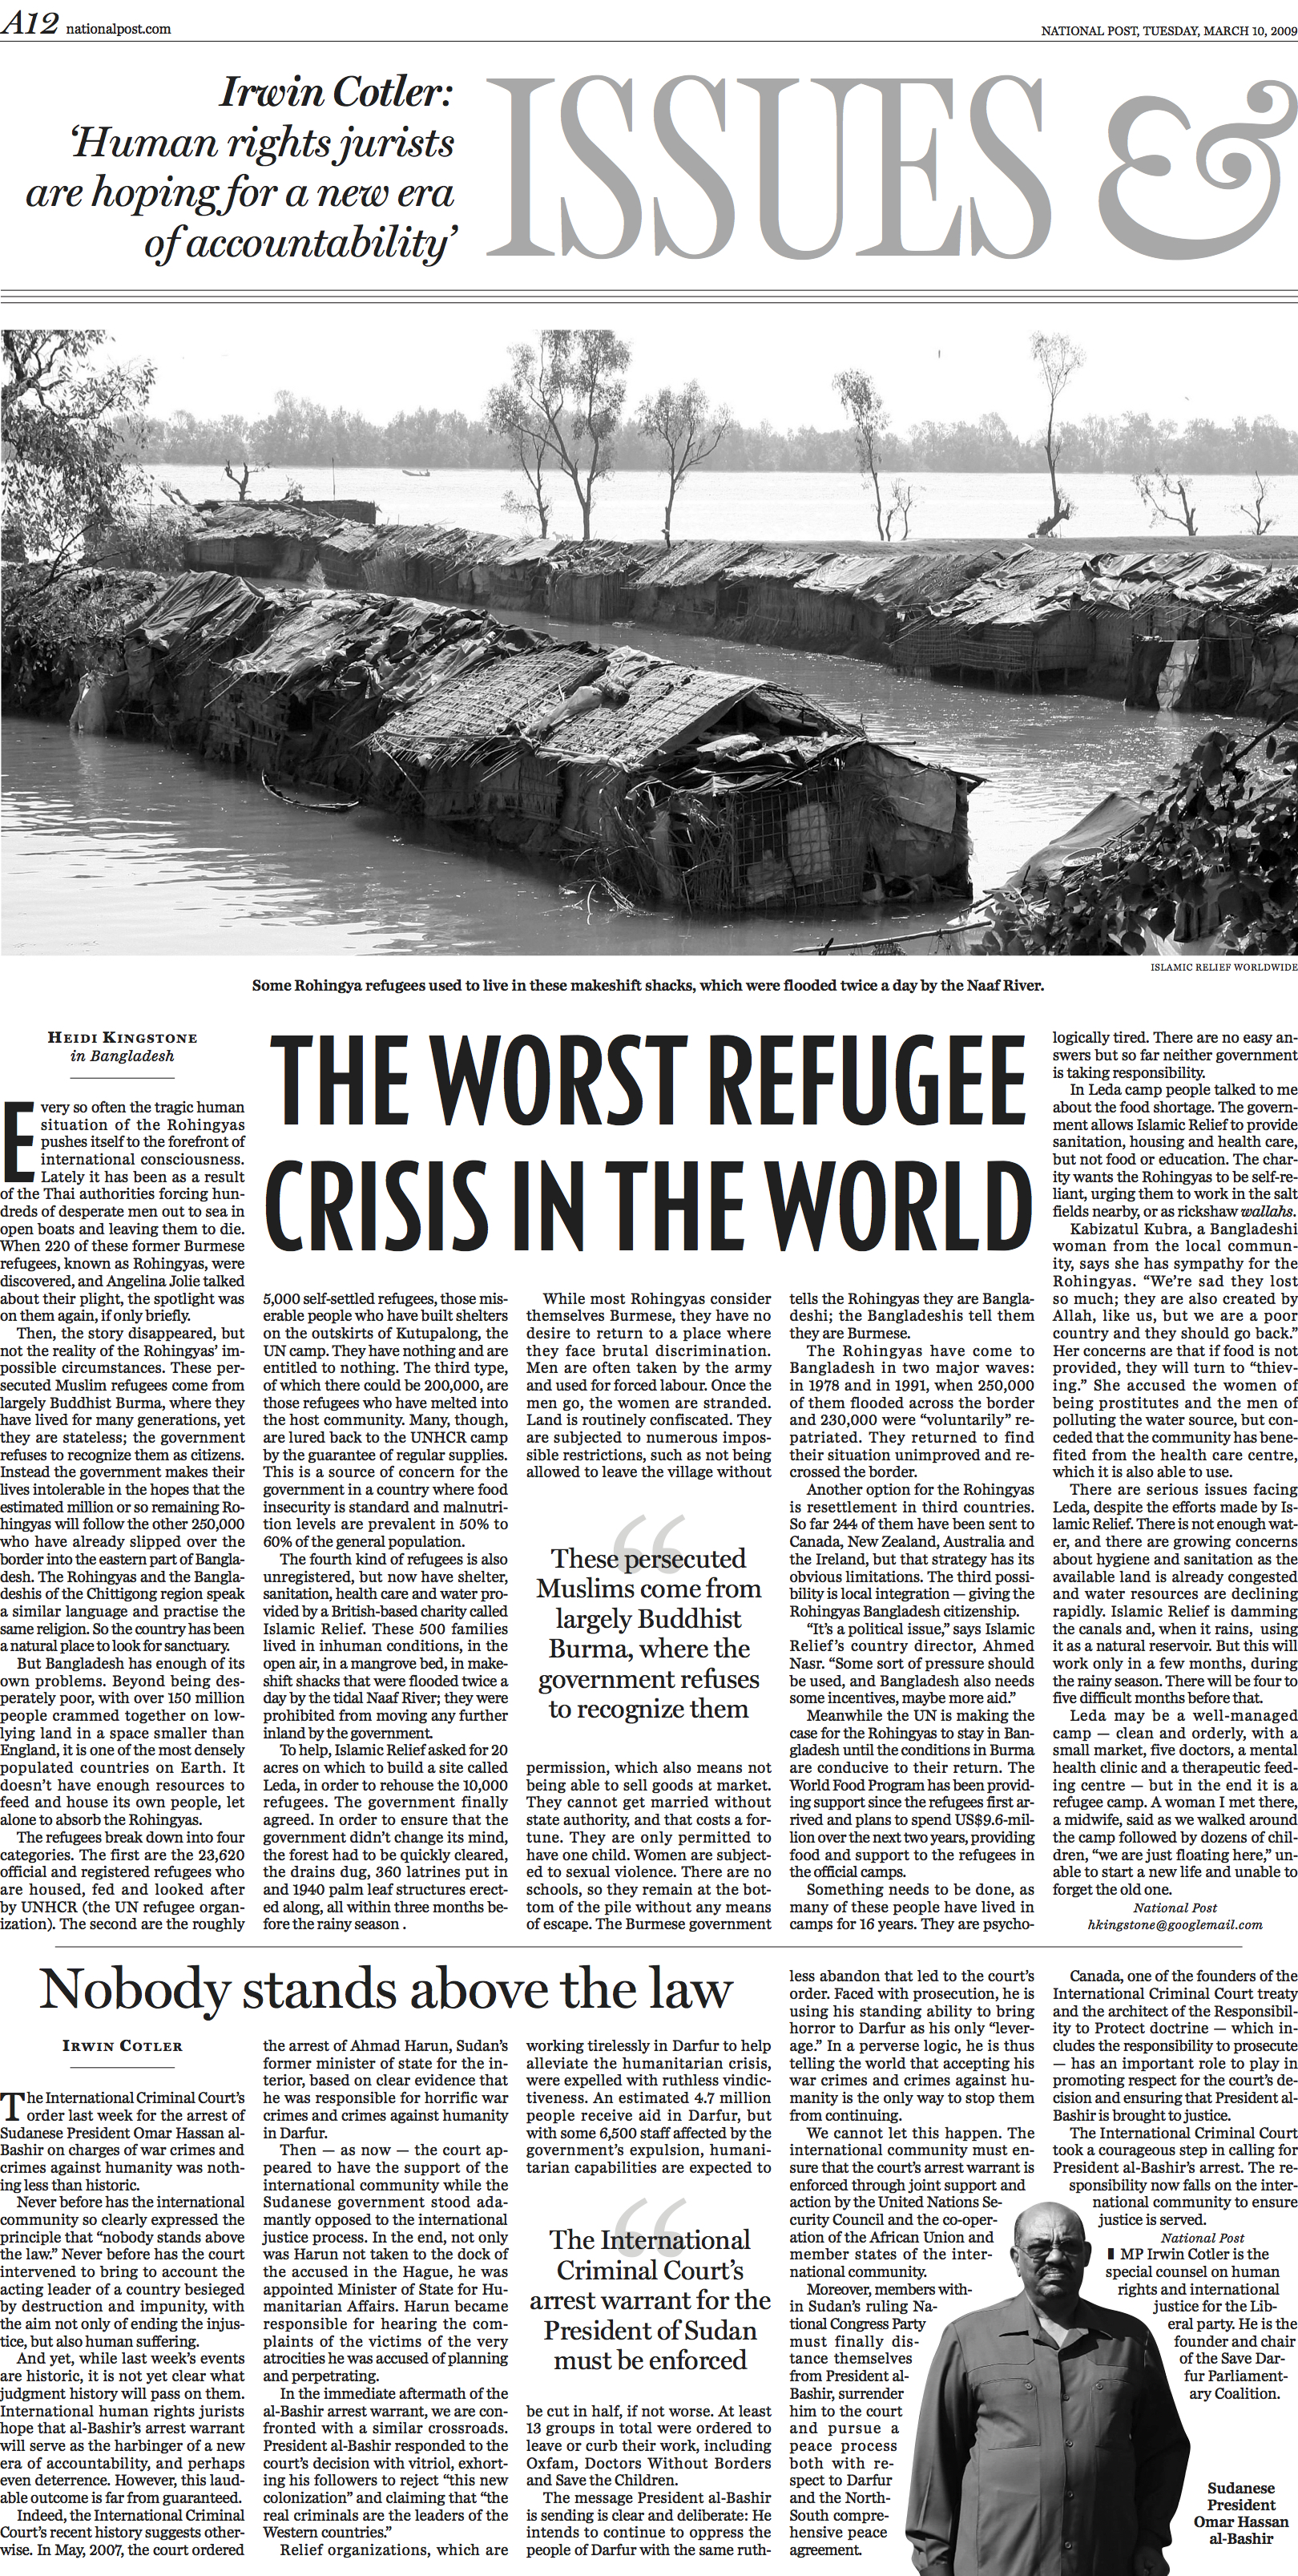 The National Post -The-Worst-Refugee-Crisis-in-the-World